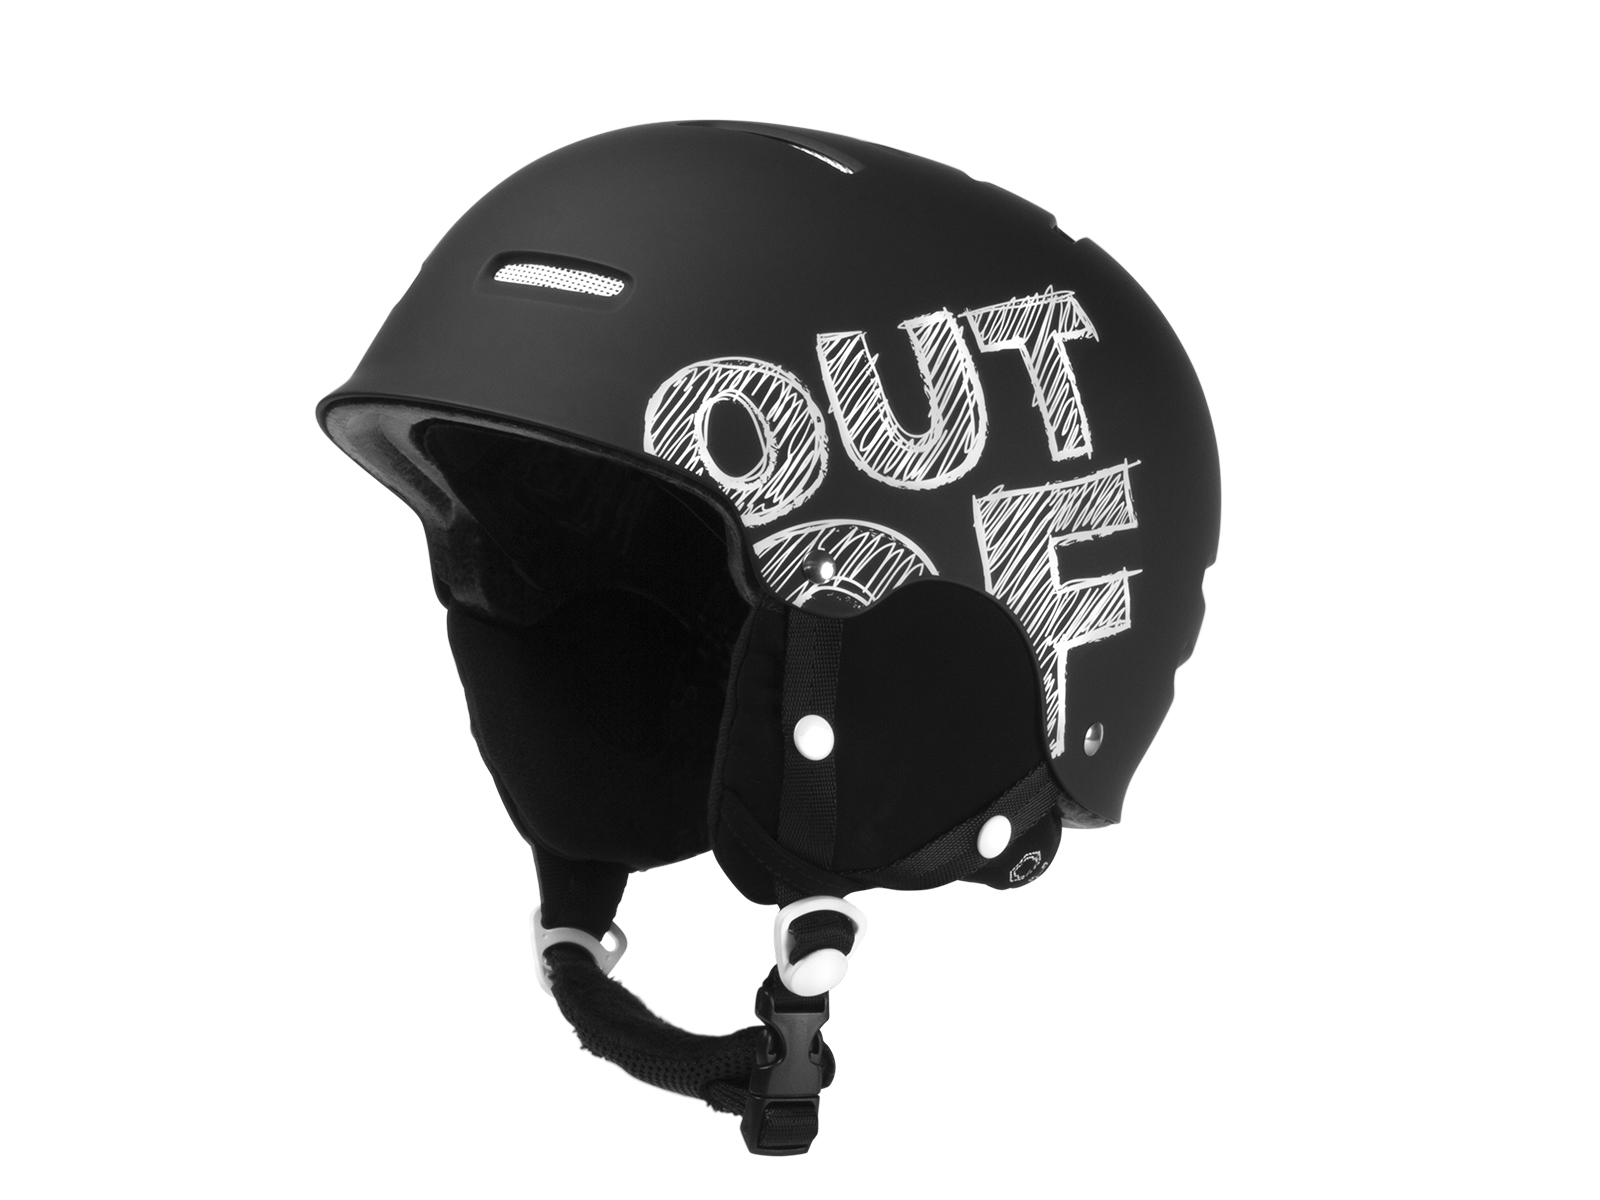 WIPEOUT BLACKBOARD HELMET